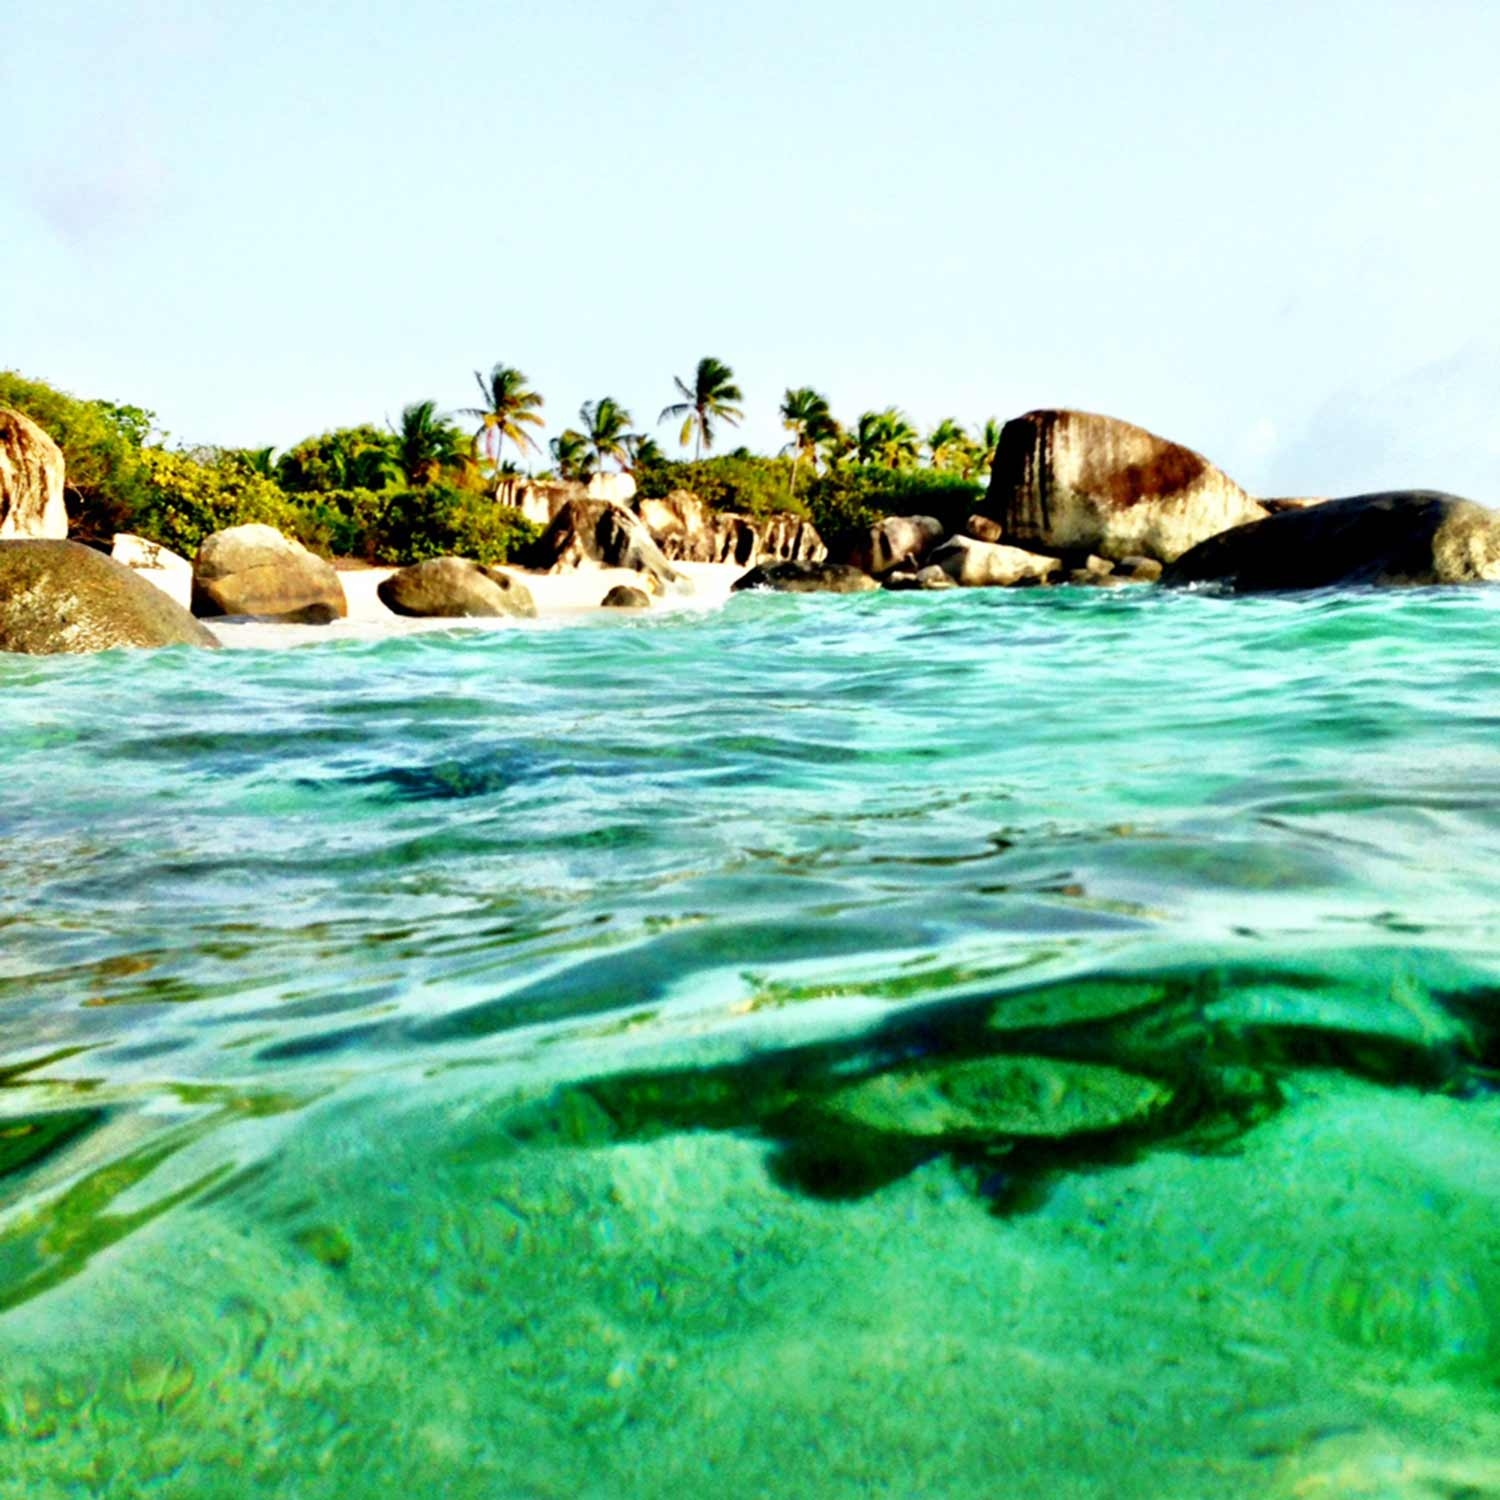 In the clear sea looking back at the shoreline scattered with rock formations and palm trees